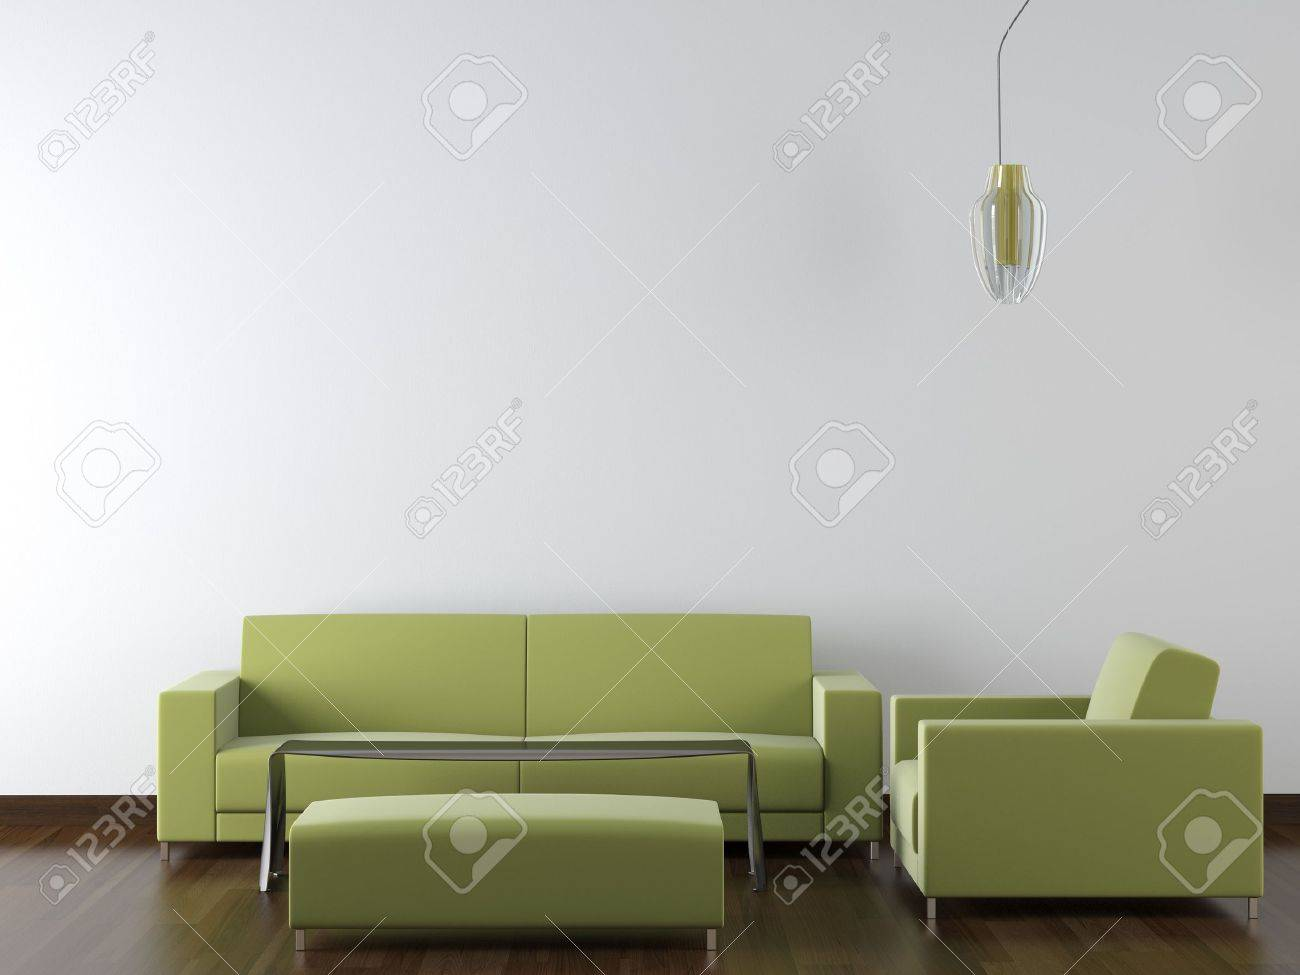 Interior Design Of Modern Green Living Room Furniture Against ...